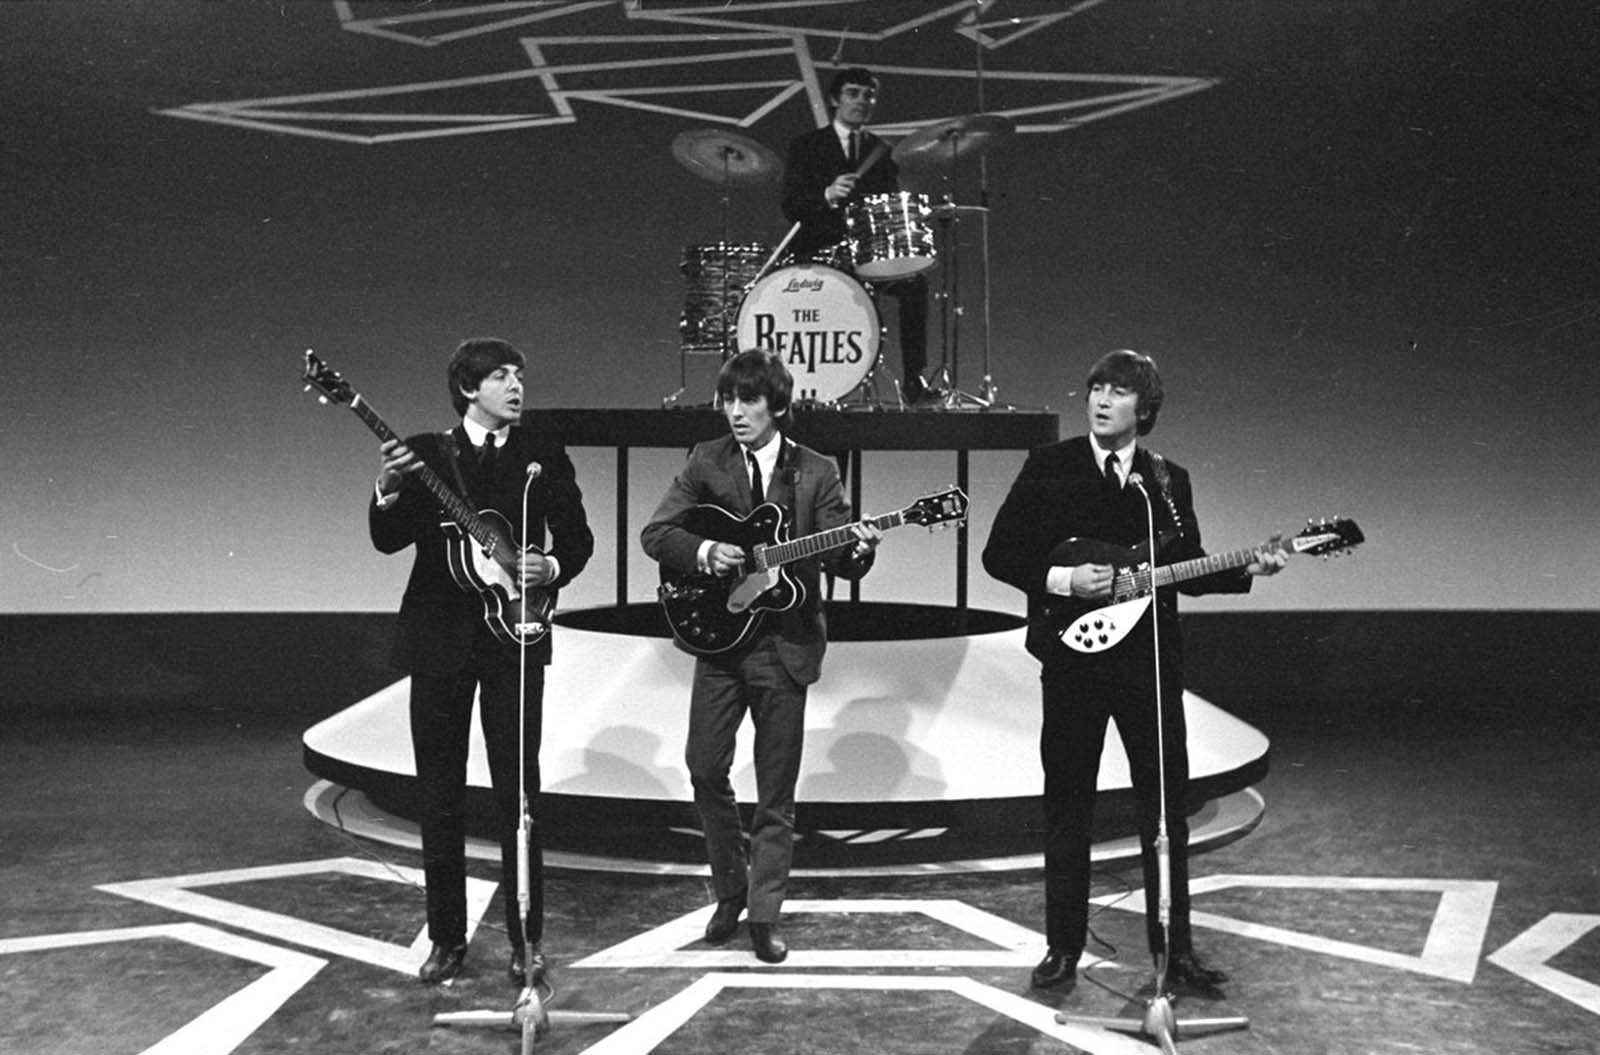 The Beatles during television recordings in Hillegom, Netherlands, on June 5, 1964. Drummer Ringo Starr was briefly hospitalized after a tonsillectomy, and Jimmie Nicol sat in on drums for several concerts.